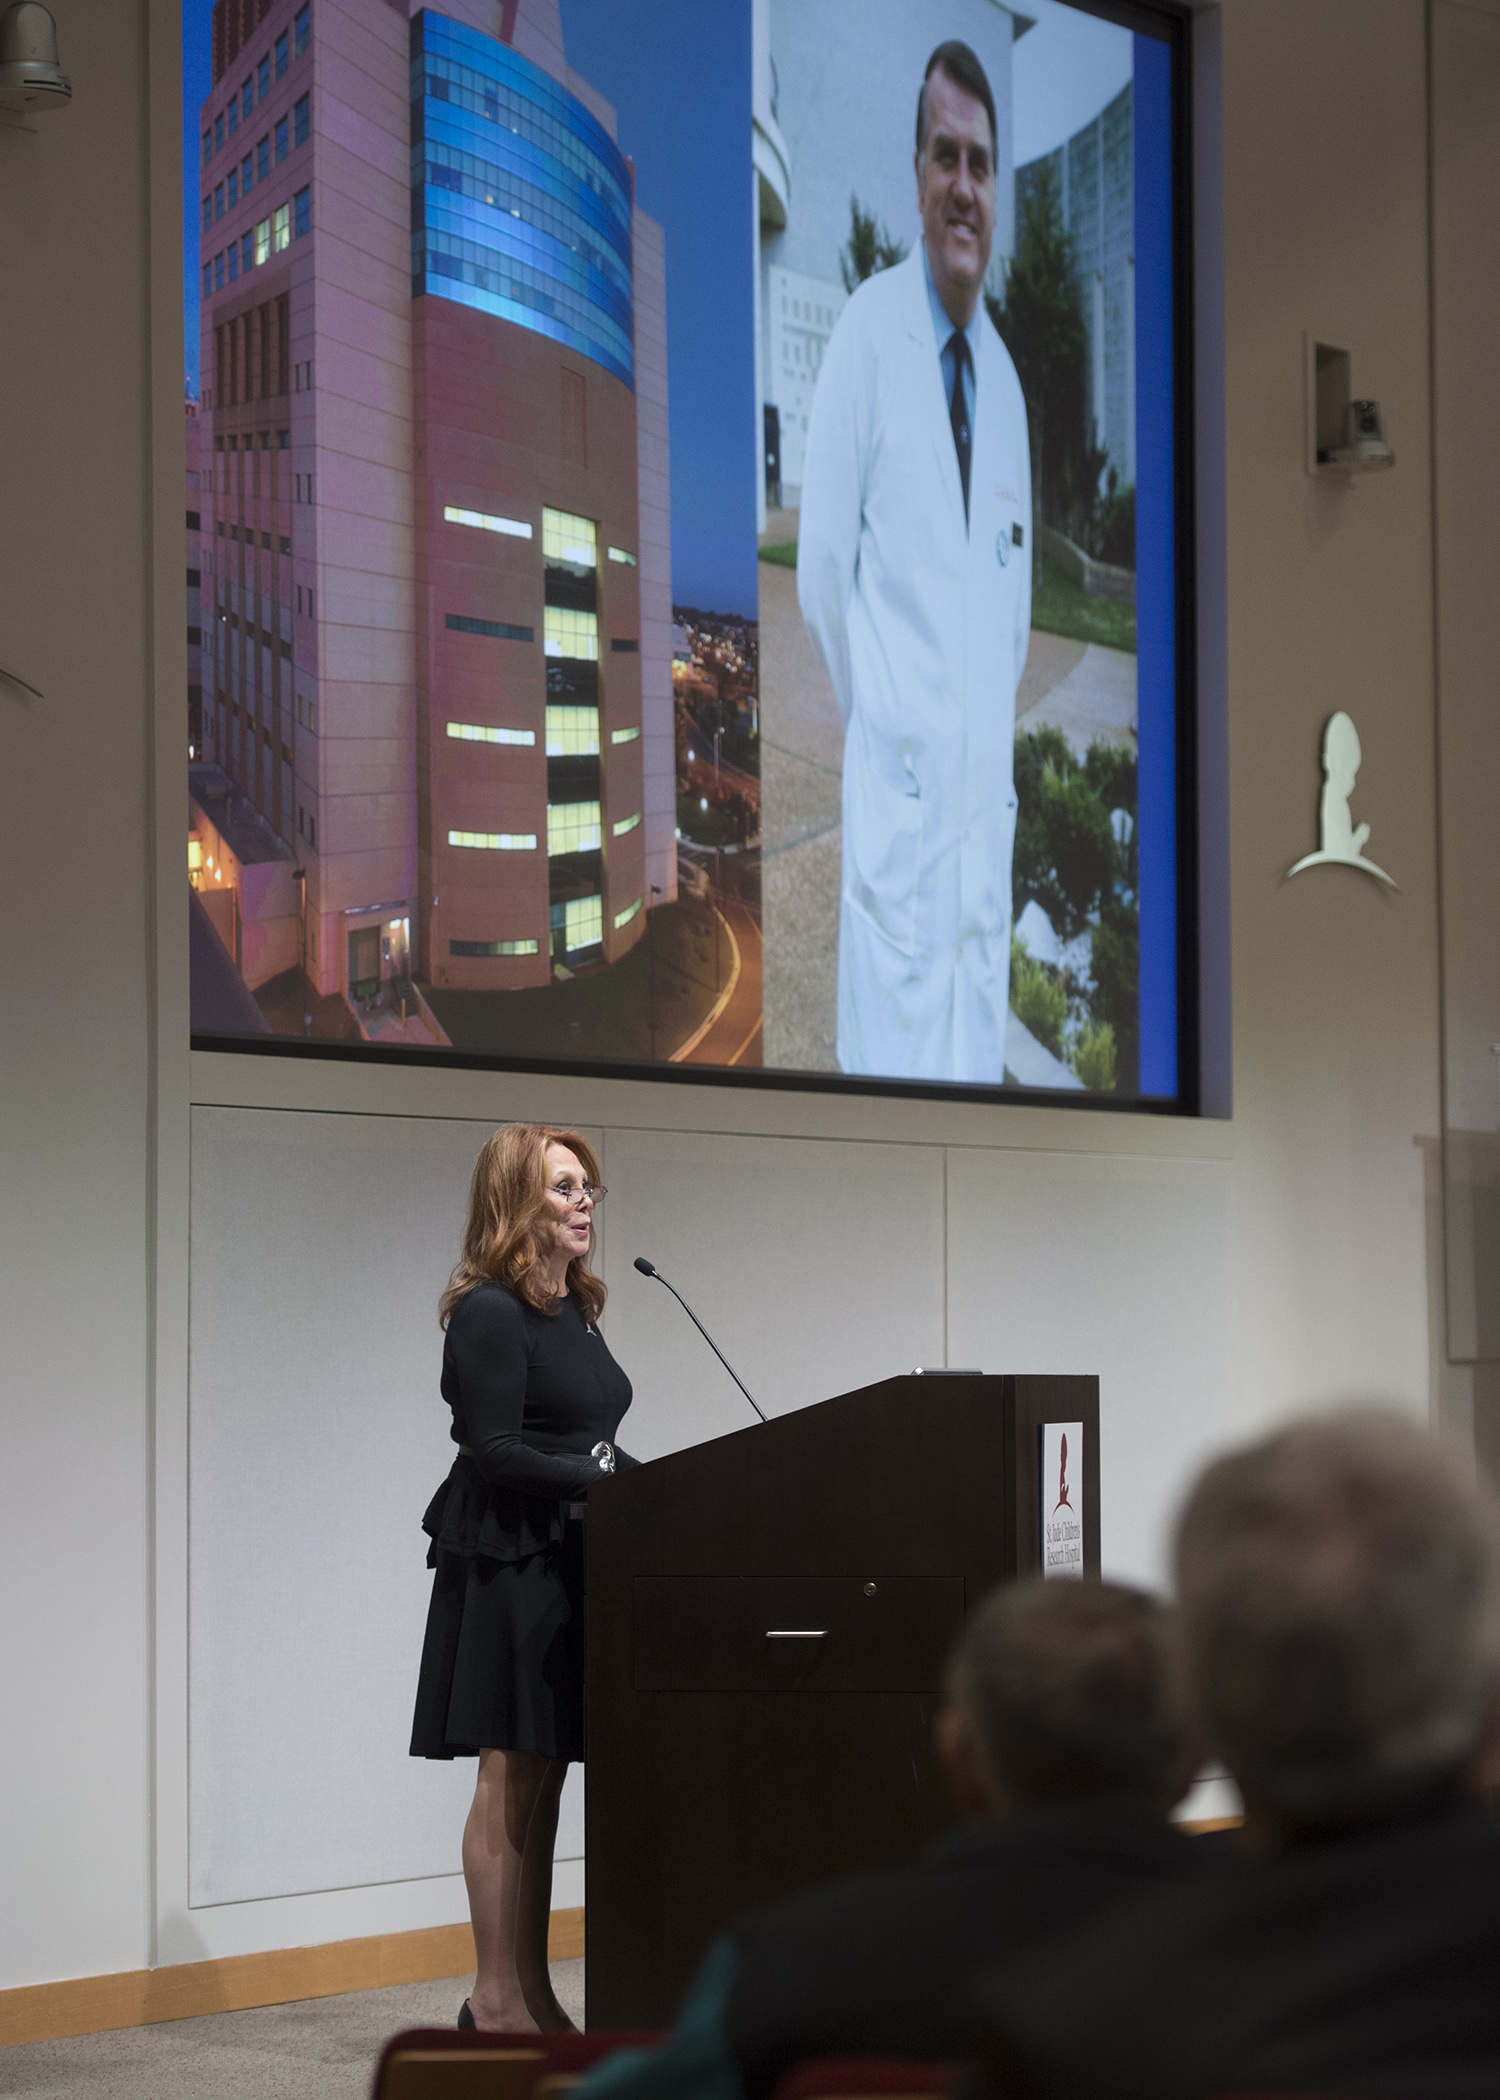 Marlo Thomas, daughter of St. Jude founder Danny Thomas, dedicates building to Dr. Pinkel.